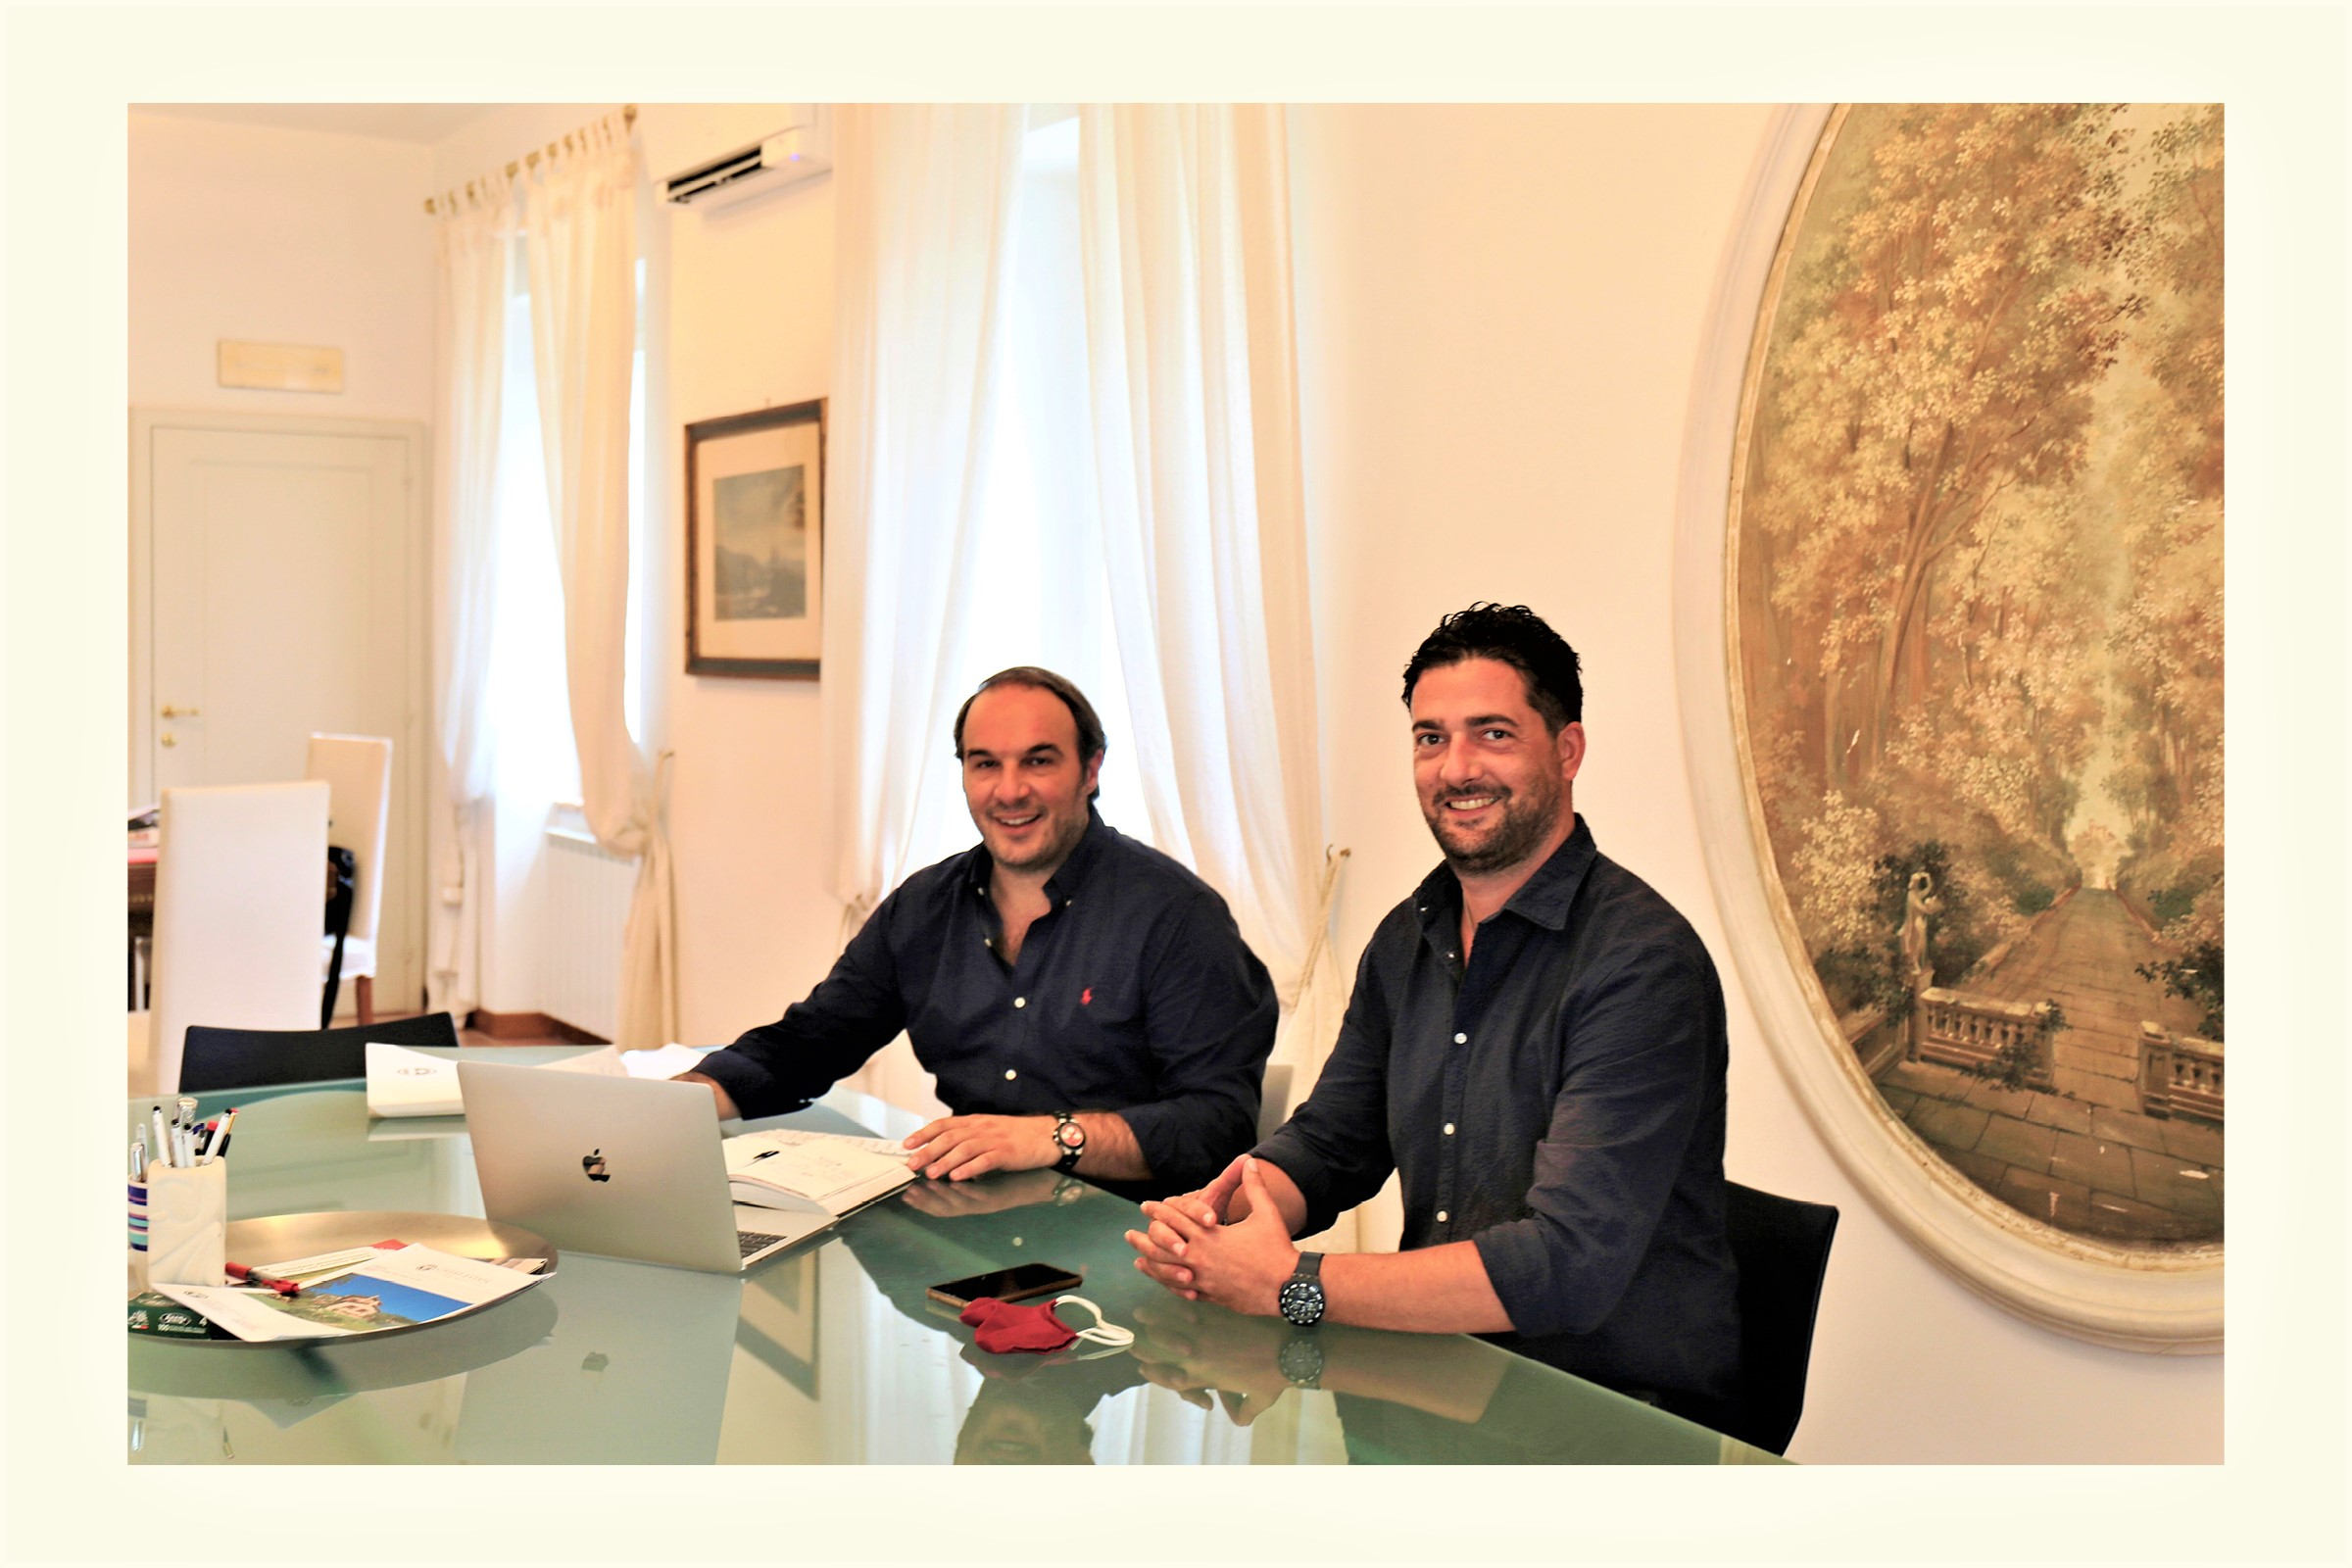 A new partner of the GE Network: Alunno Immobiliare Cortona Real Estate